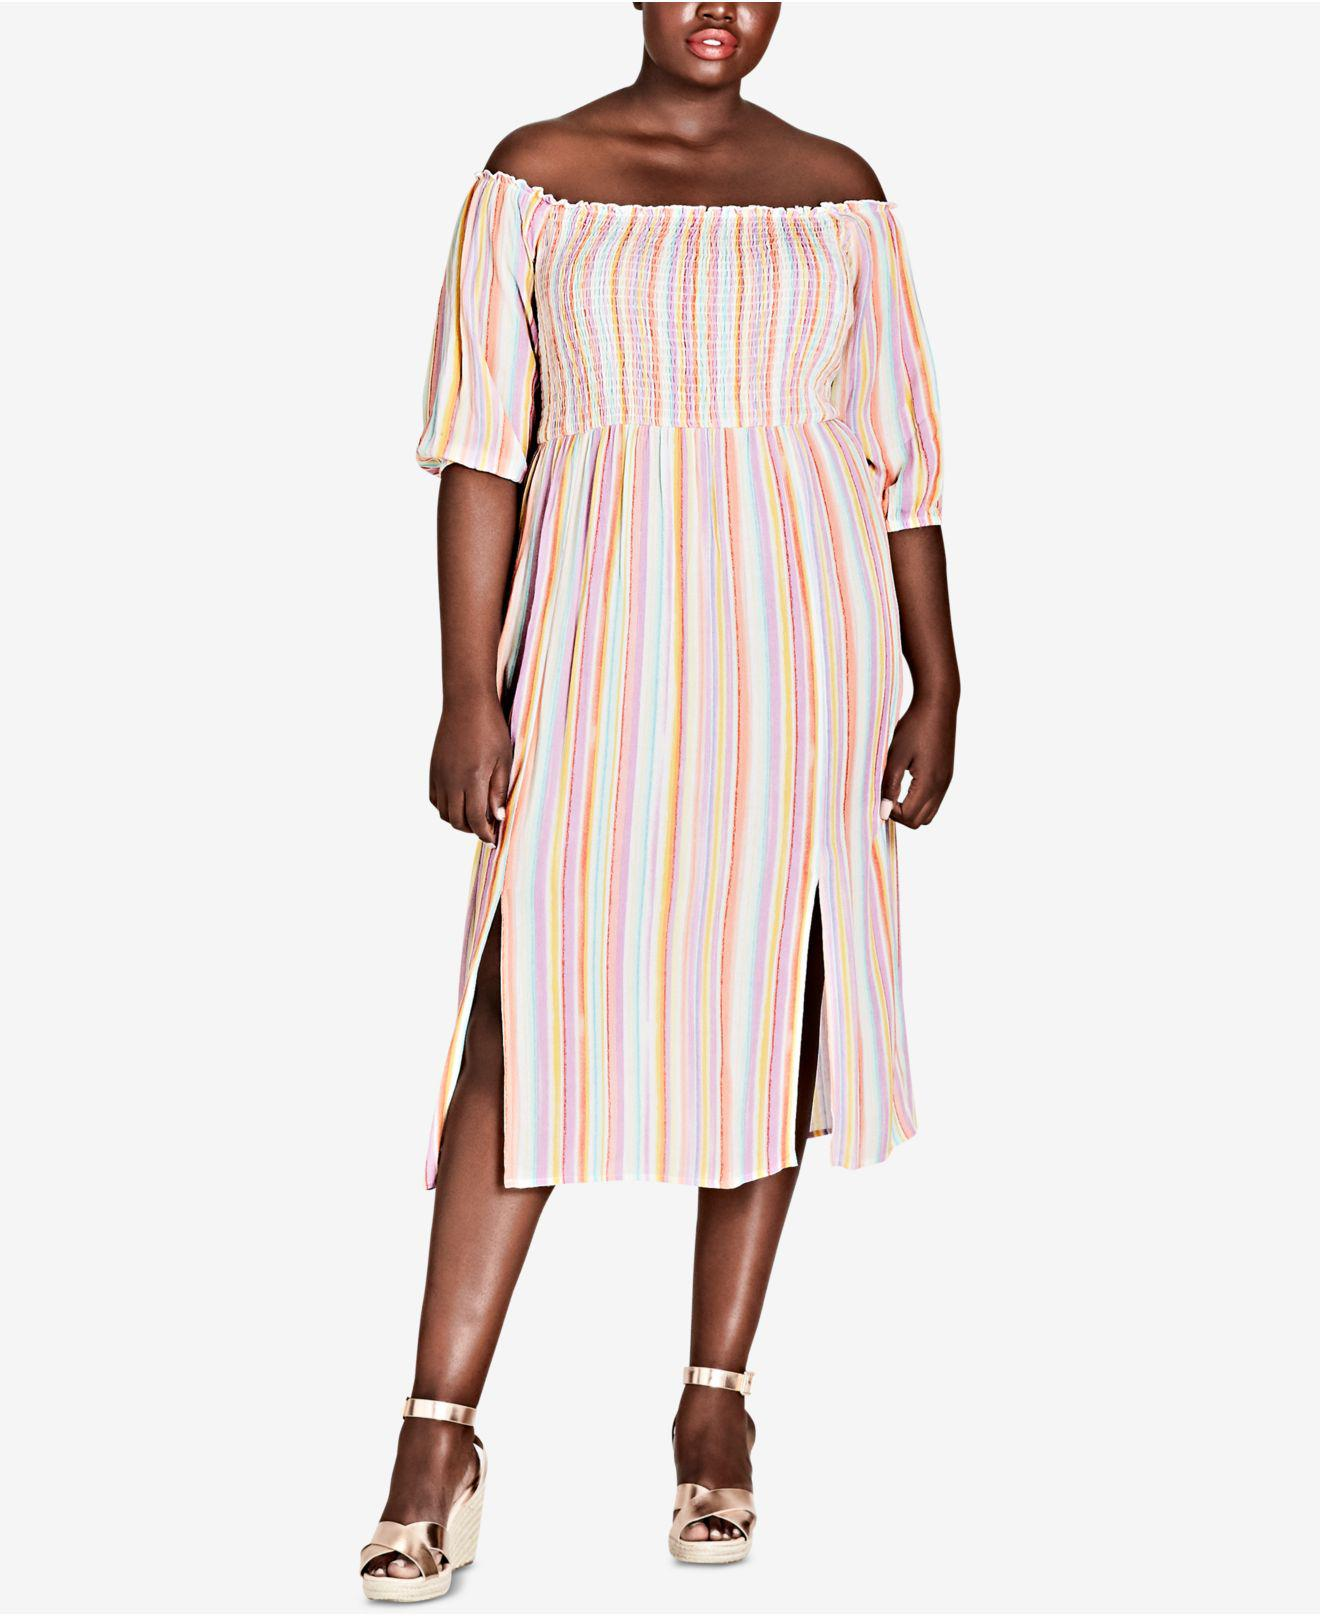 9406f81a0ad6a Lyst - City Chic Trendy Plus Size Off-the-shoulder Midi Dress in ...